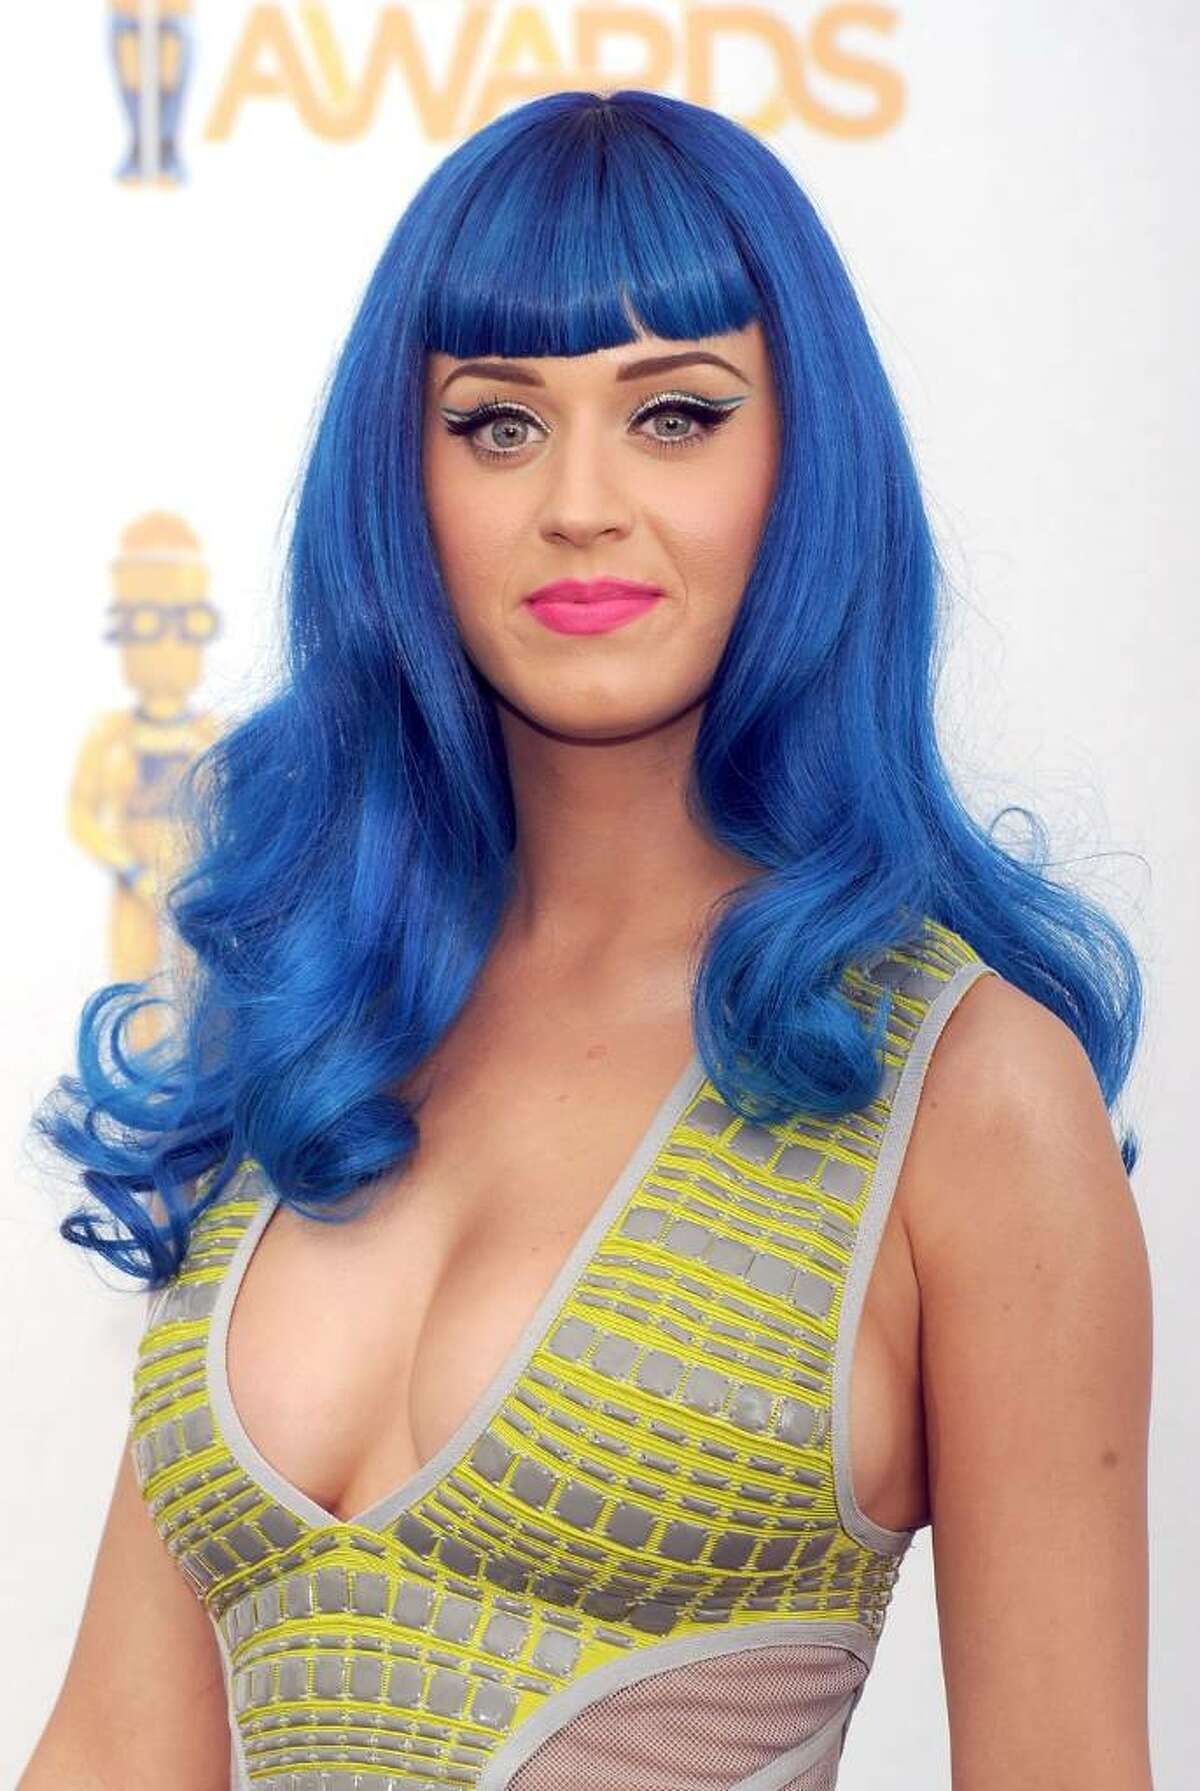 UNIVERSAL CITY, CA - JUNE 06: Singer Katy Perry poses in the press room at the 2010 MTV Movie Awards at Gibson Amphitheatre on June 6, 2010 in Universal City, California. (Photo by Jason Merritt/Getty Images) *** Local Caption *** Katy Perry